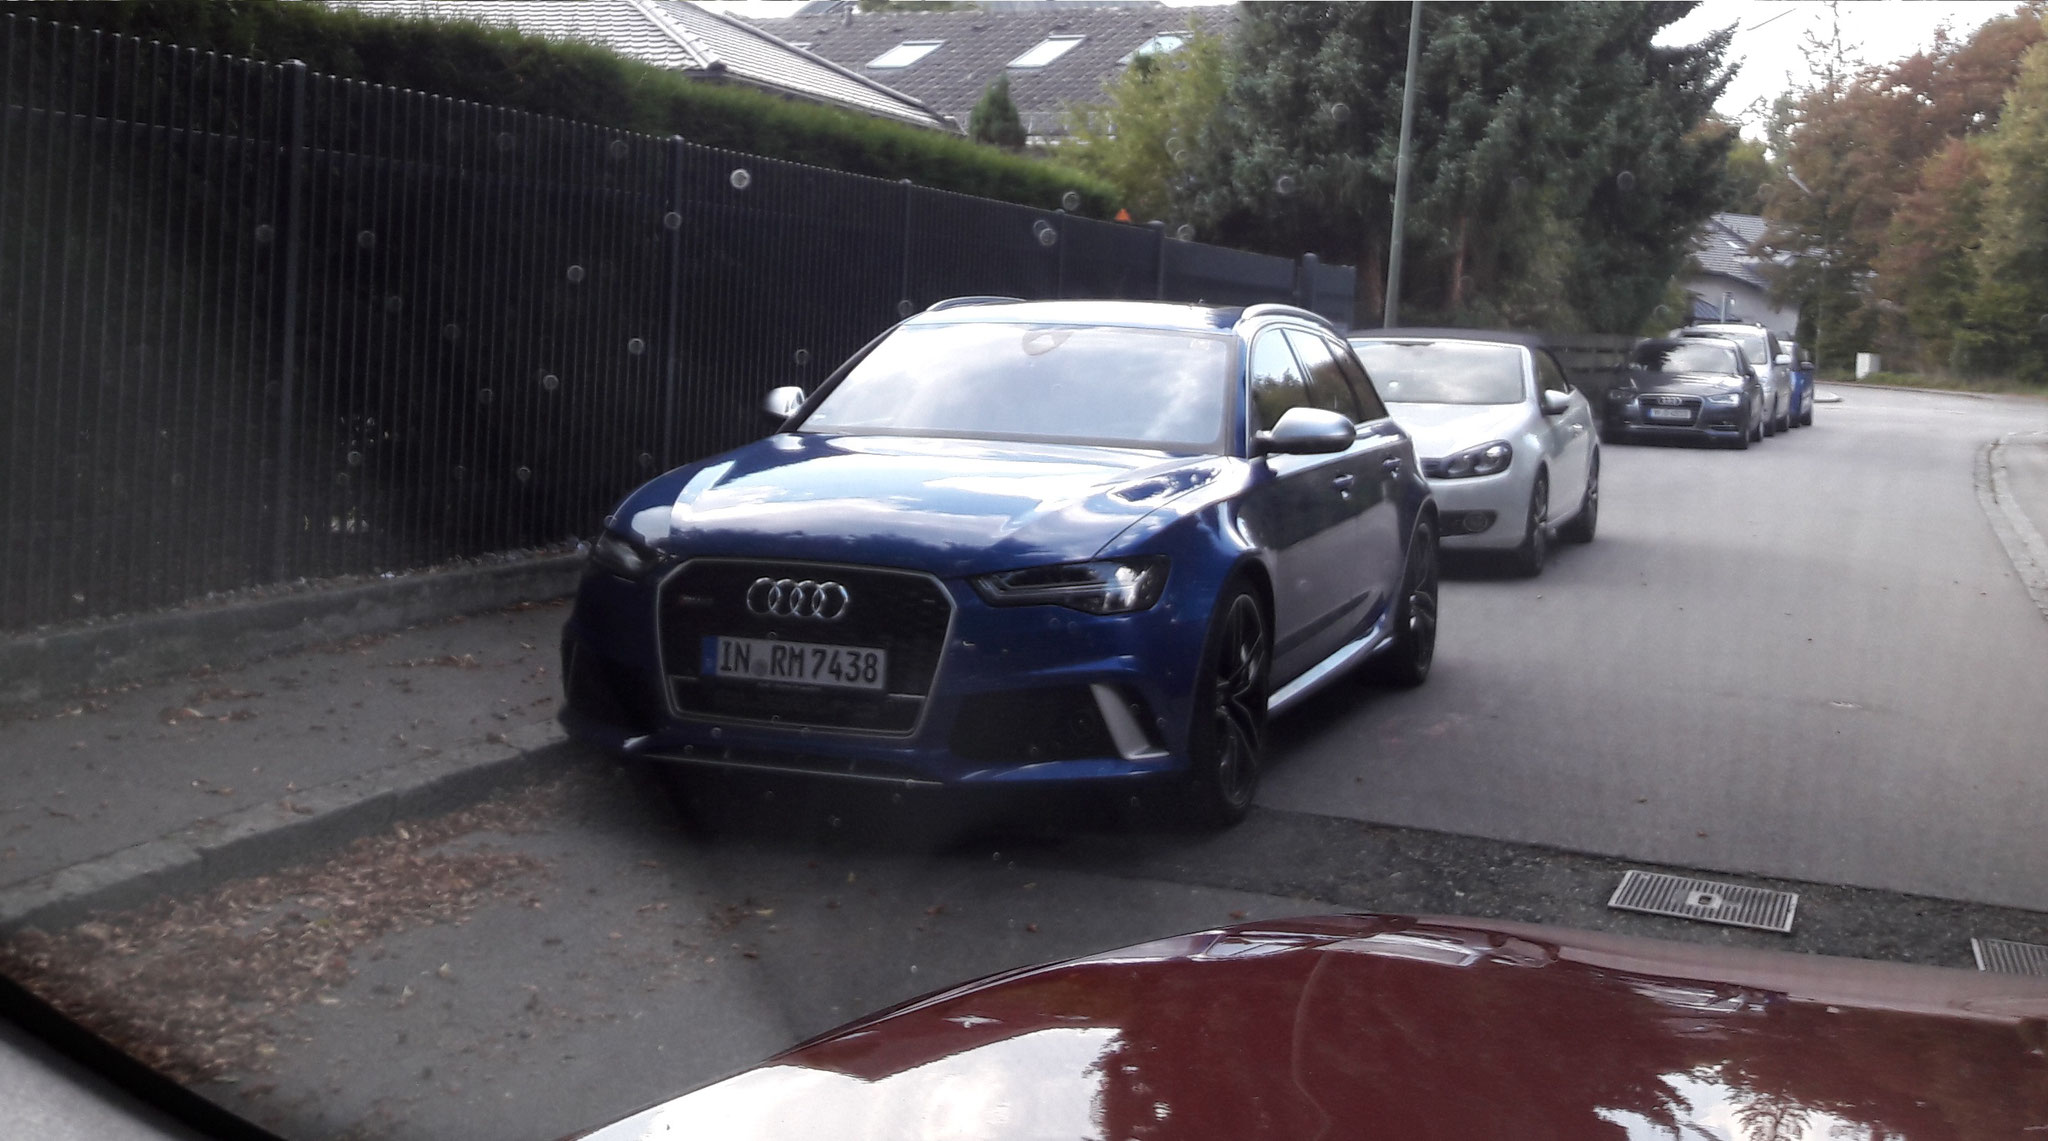 Audi RS6 - IN-RM-7438